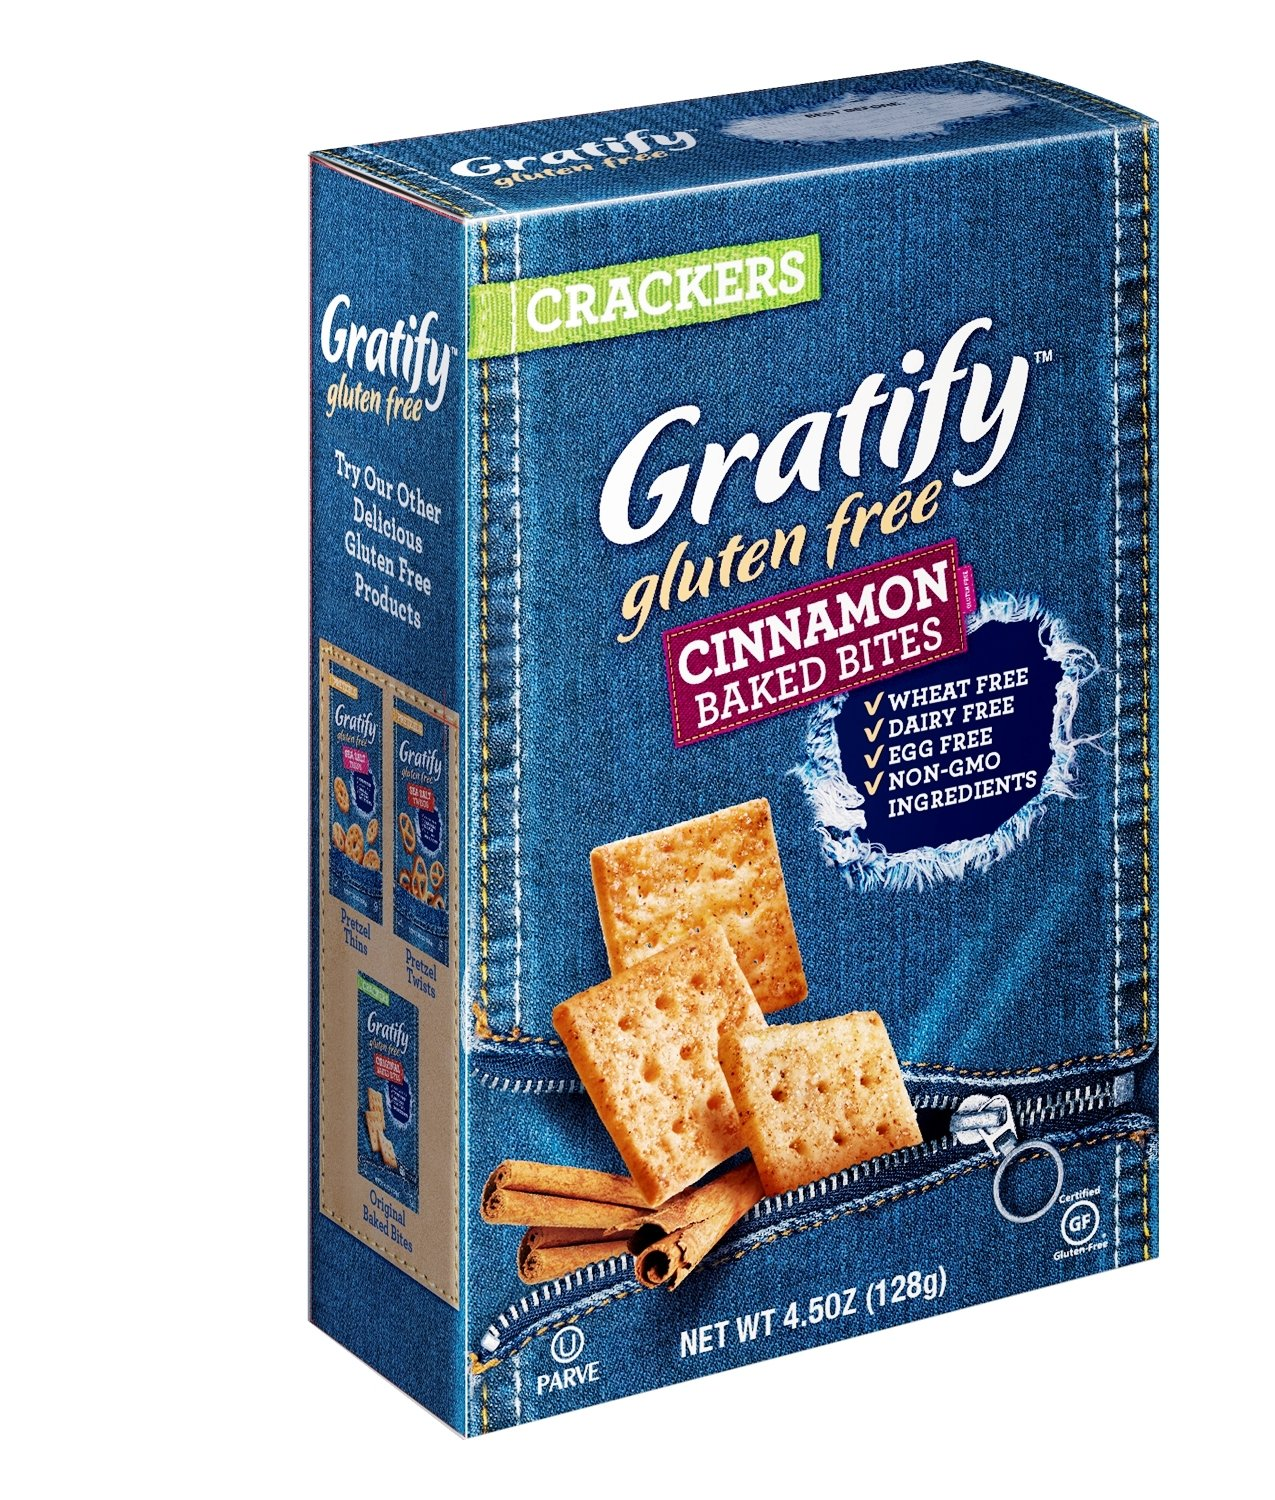 Gratify Gluten Free Crackers Bites Cinnamon and Sugar Crispy Baked Vegan GF Snacks, 4.5oz Bag (Pack of 12) by Gratify